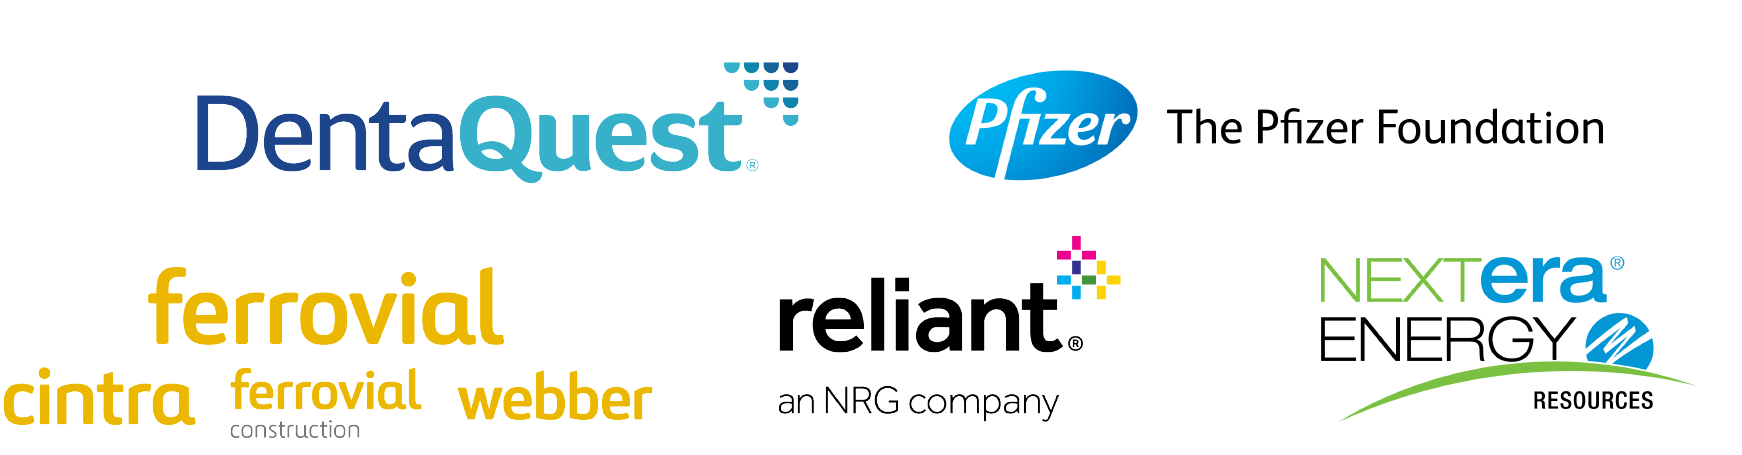 Texas COVID Relief Fund Partners Logo Block - DentaQuest | The Pfizer Foundation | Ferrovial and US subsidiaries | Reliant, an NRG company | NextEra Energy Resources